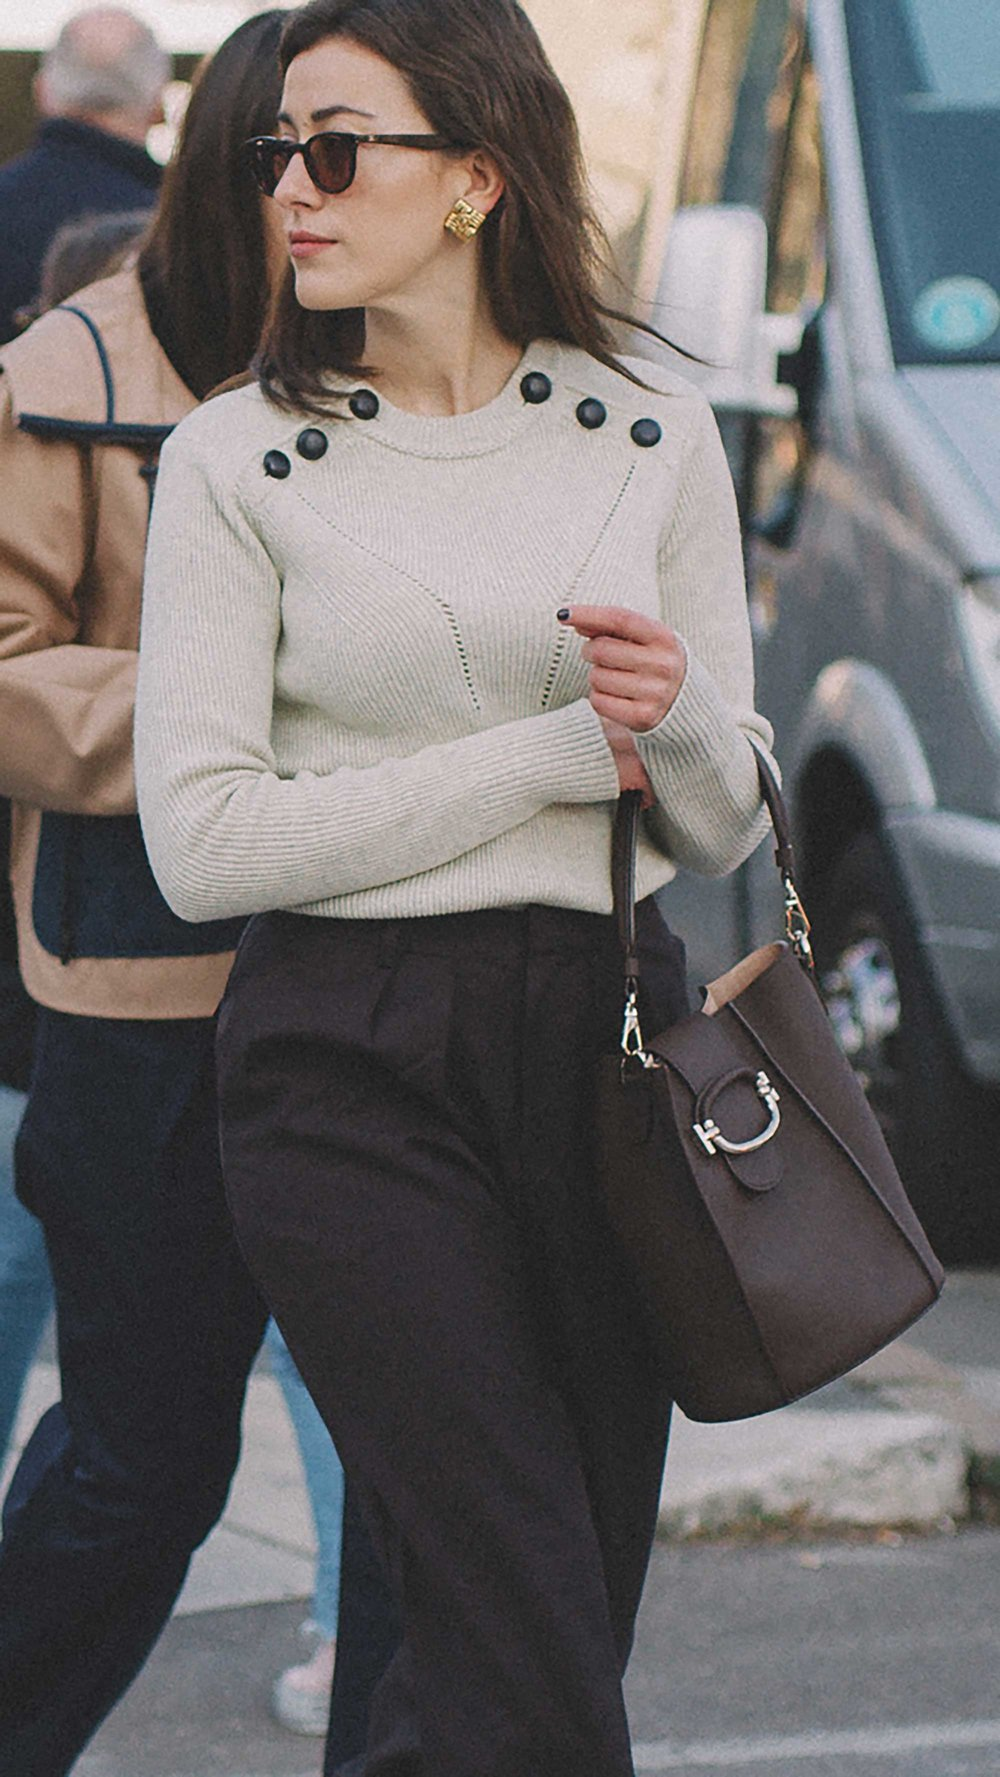 est outfits of Milan Fashion Week street style day two MFW FW19 21.jpg